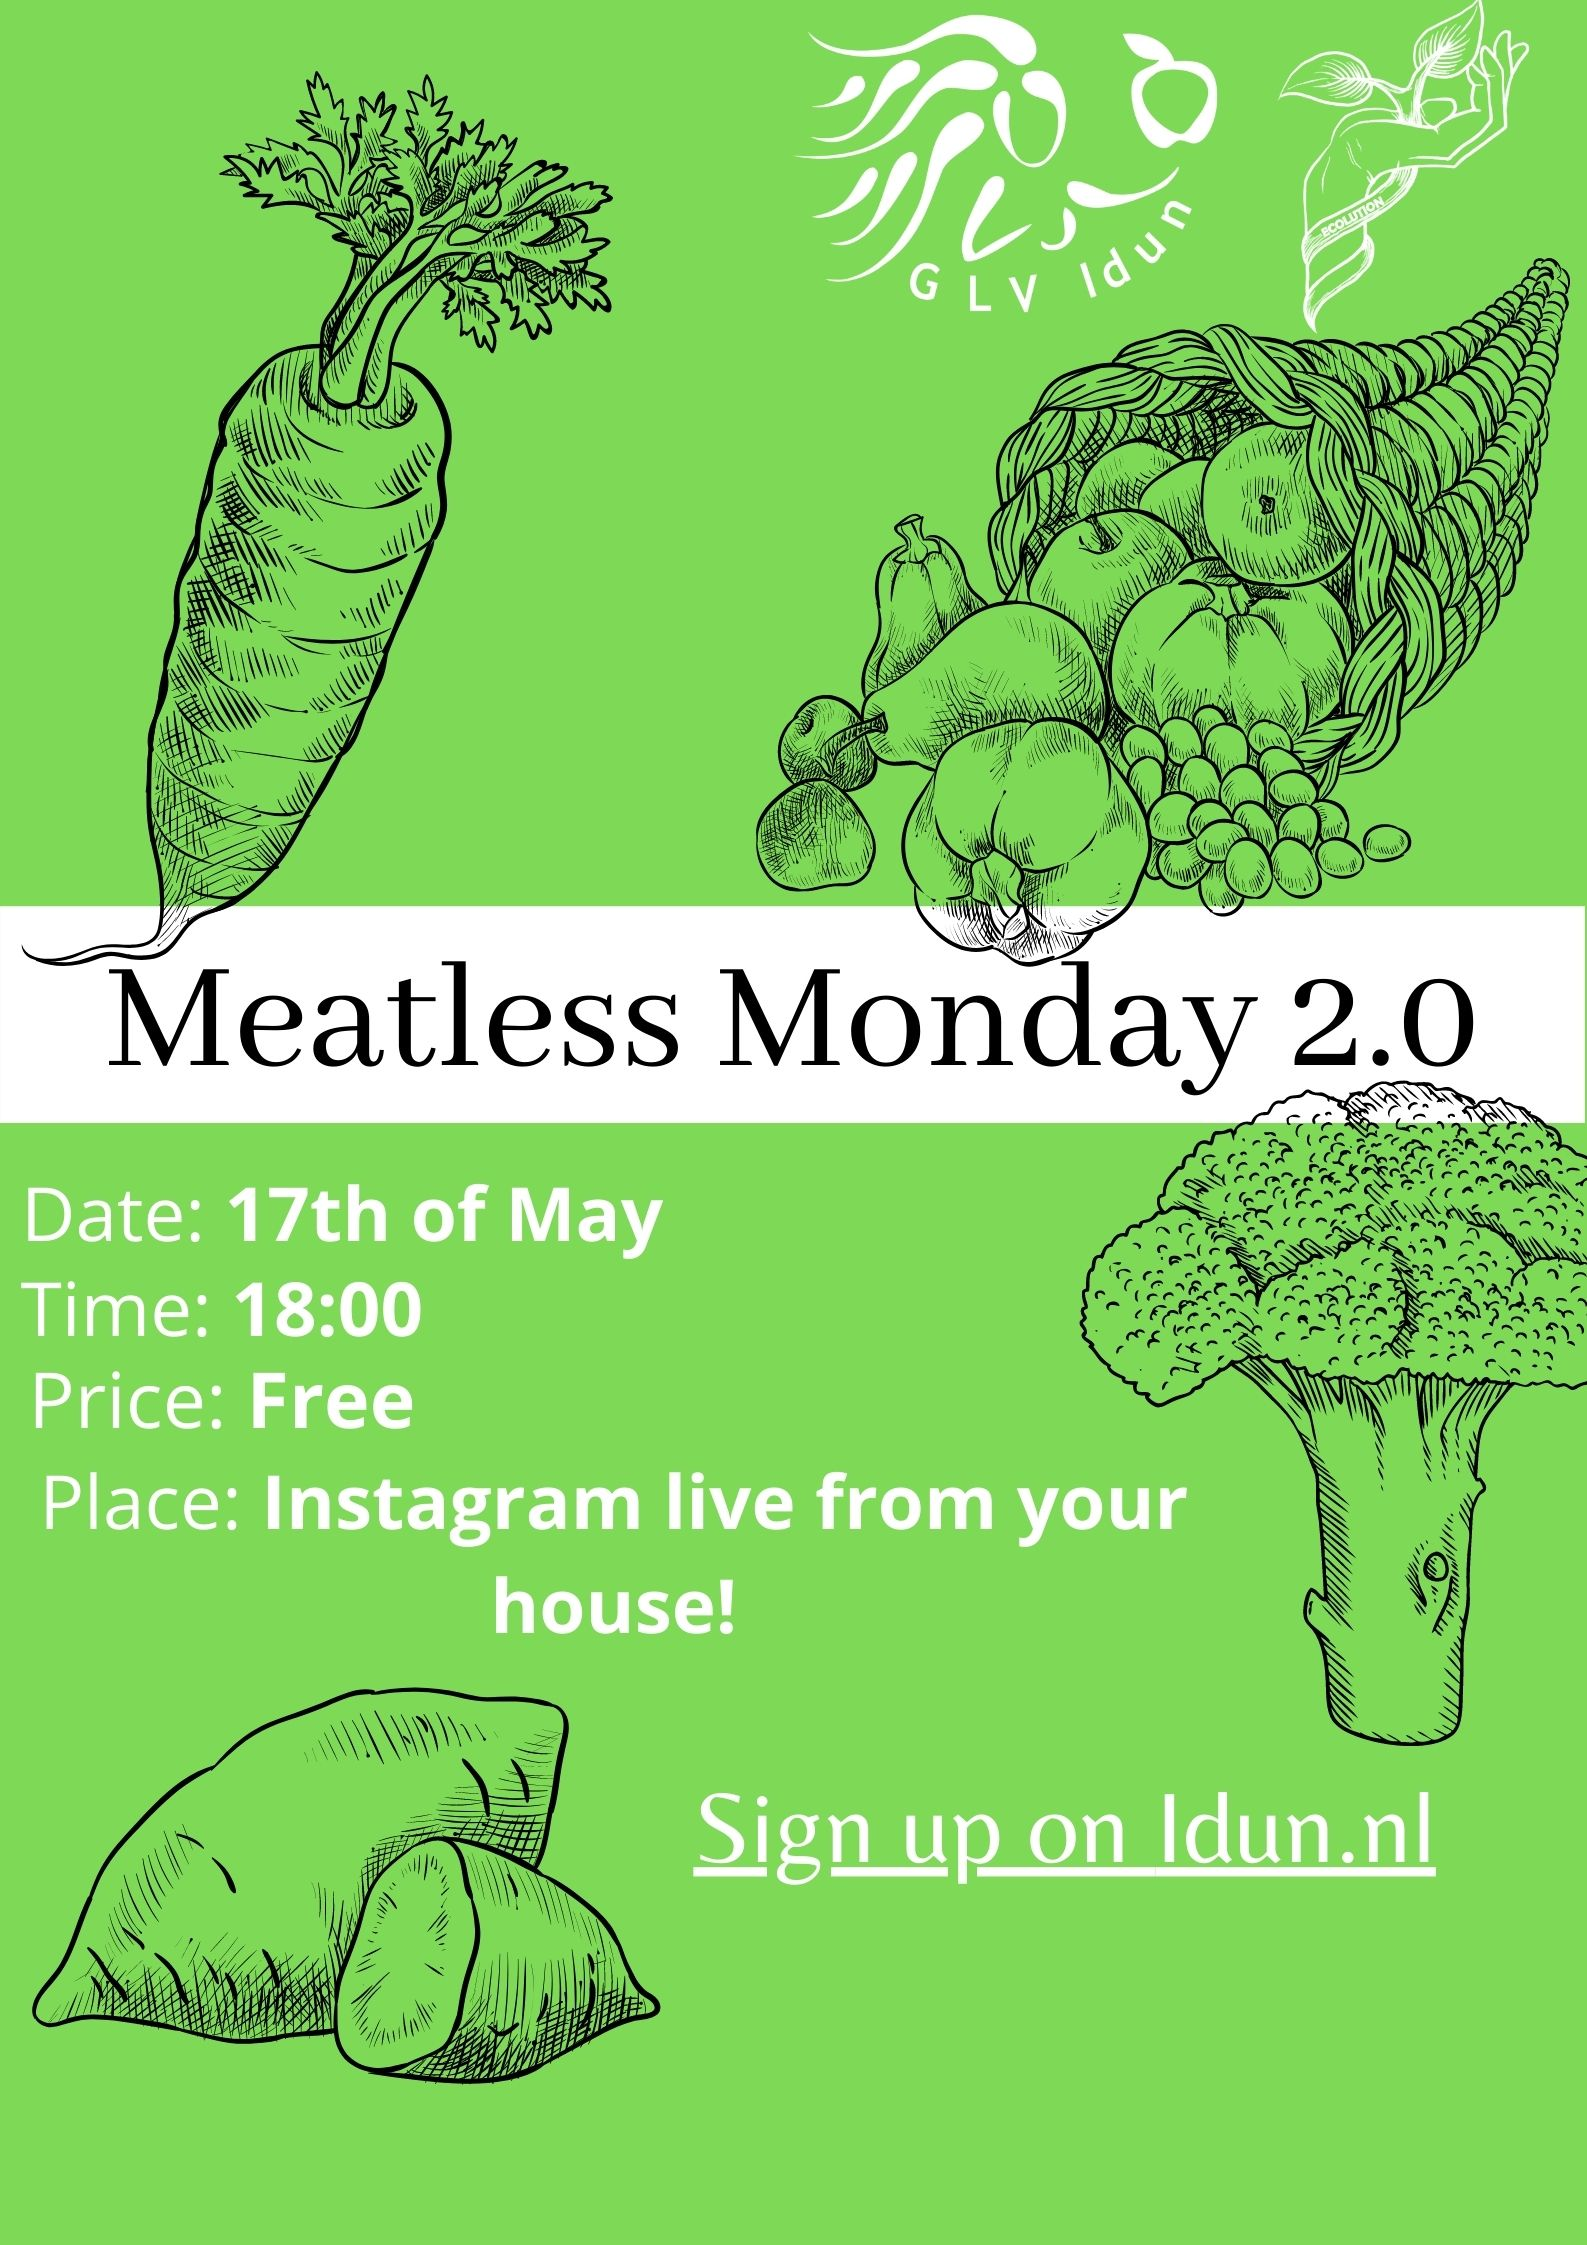 Meatless Monday 2.0